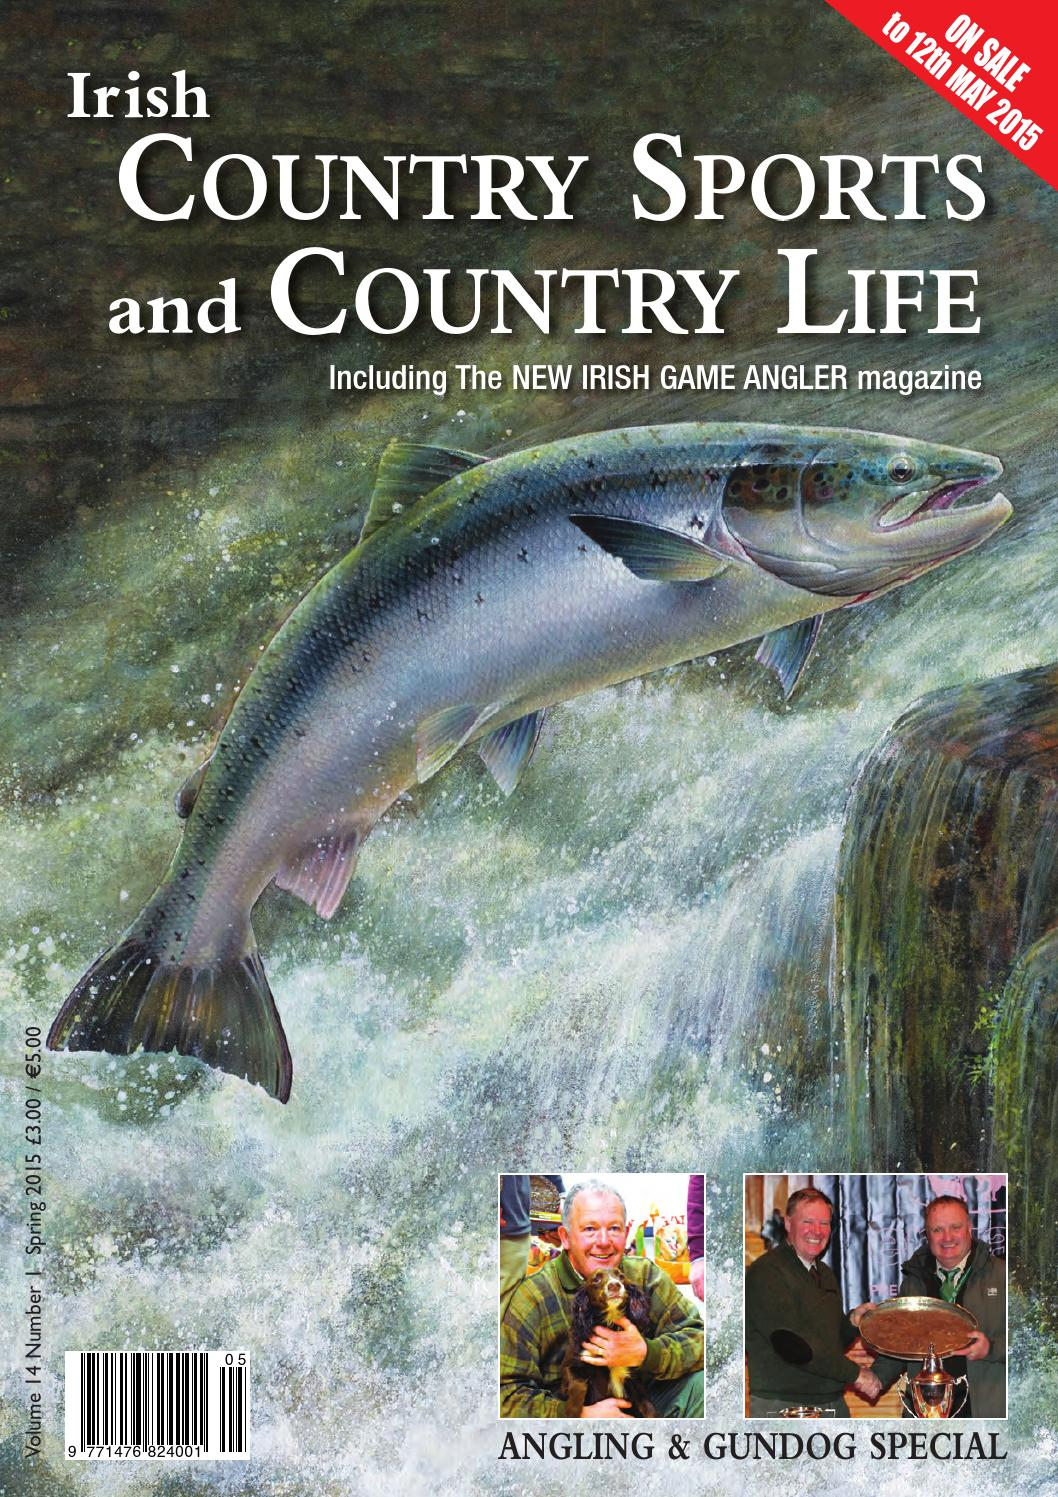 b60825fab43 Irish Country Sports and Country Life Spring 2015 by Bluegator ...